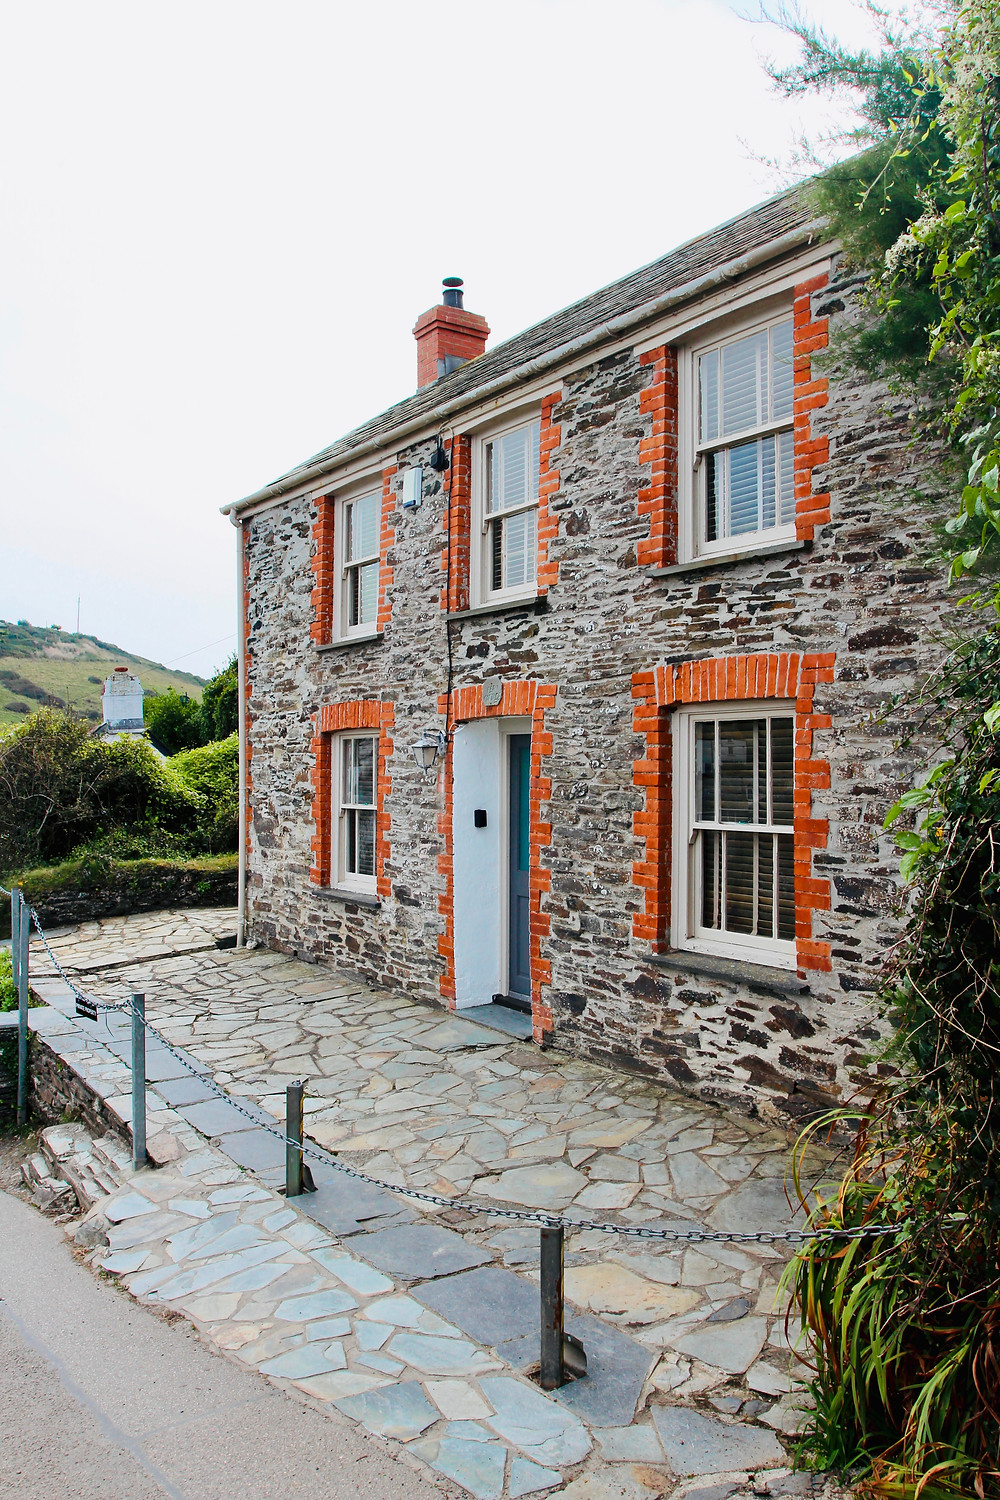 Fern Cottage, which serves as Doc Martin's surgery on the show